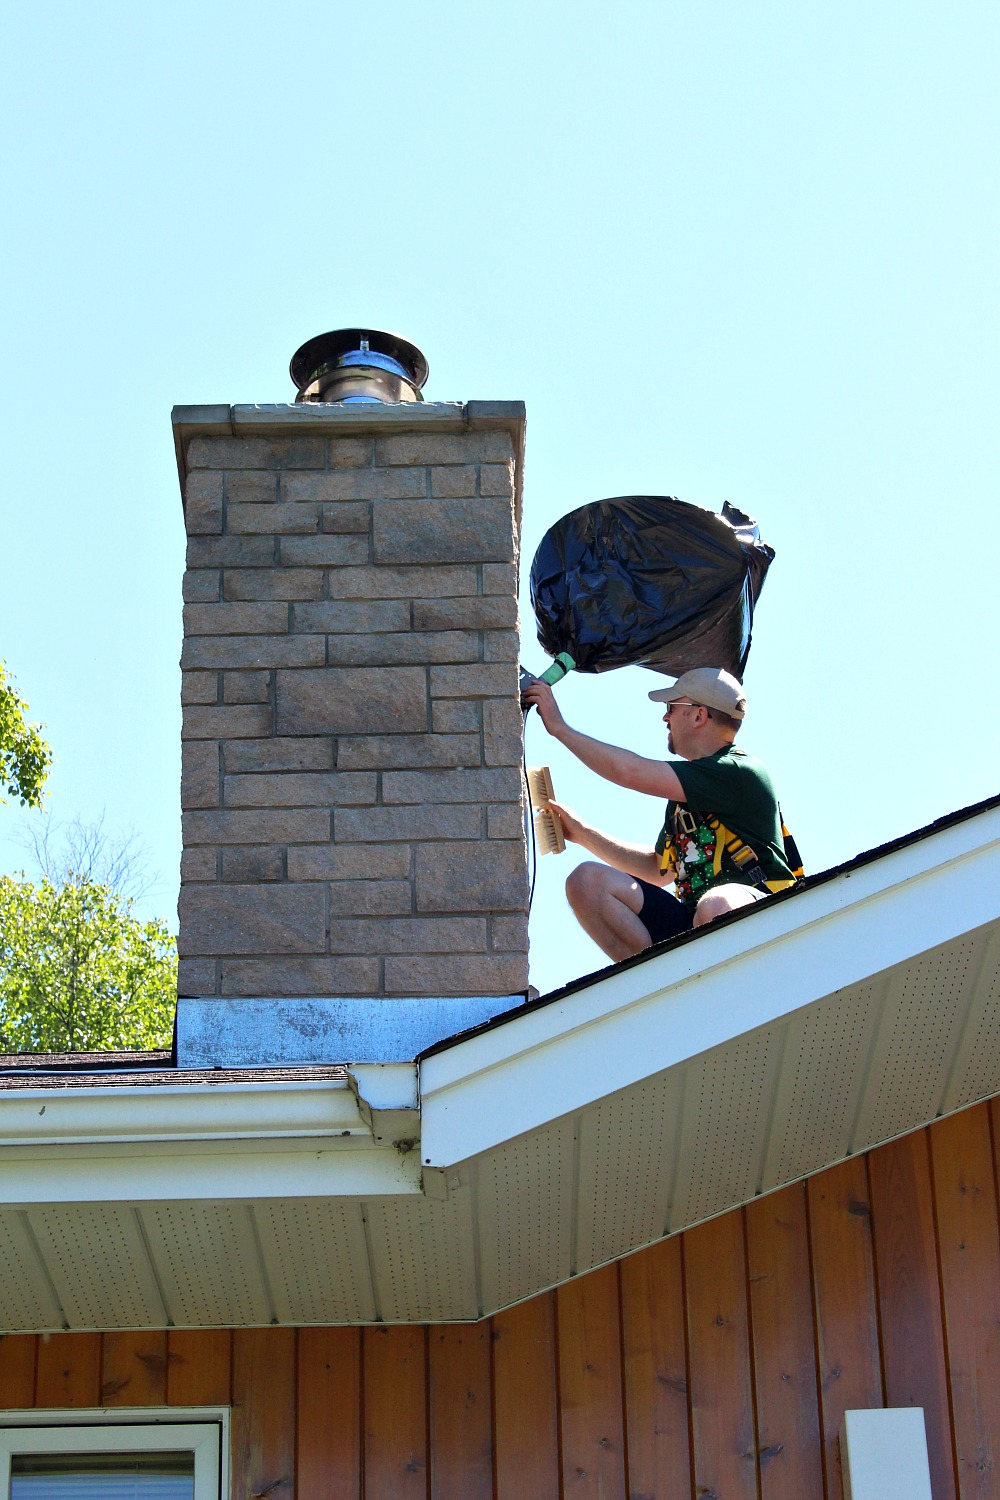 Using Fall Arrest Gear for Painting a Chimney